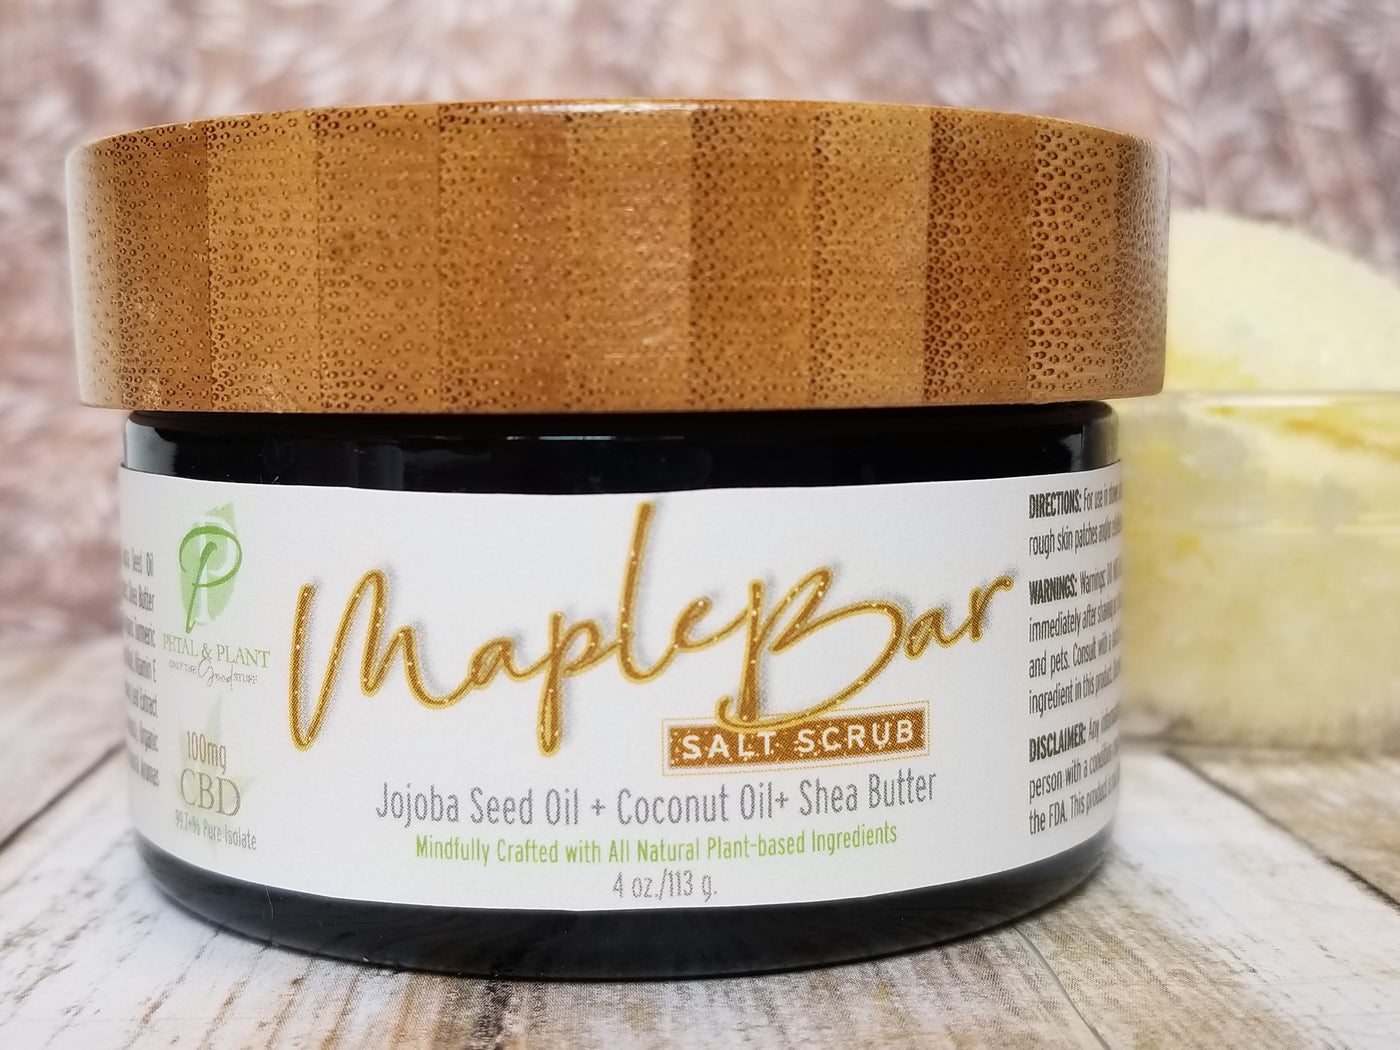 Maple Bar Salt Scrub with Hemp CBD